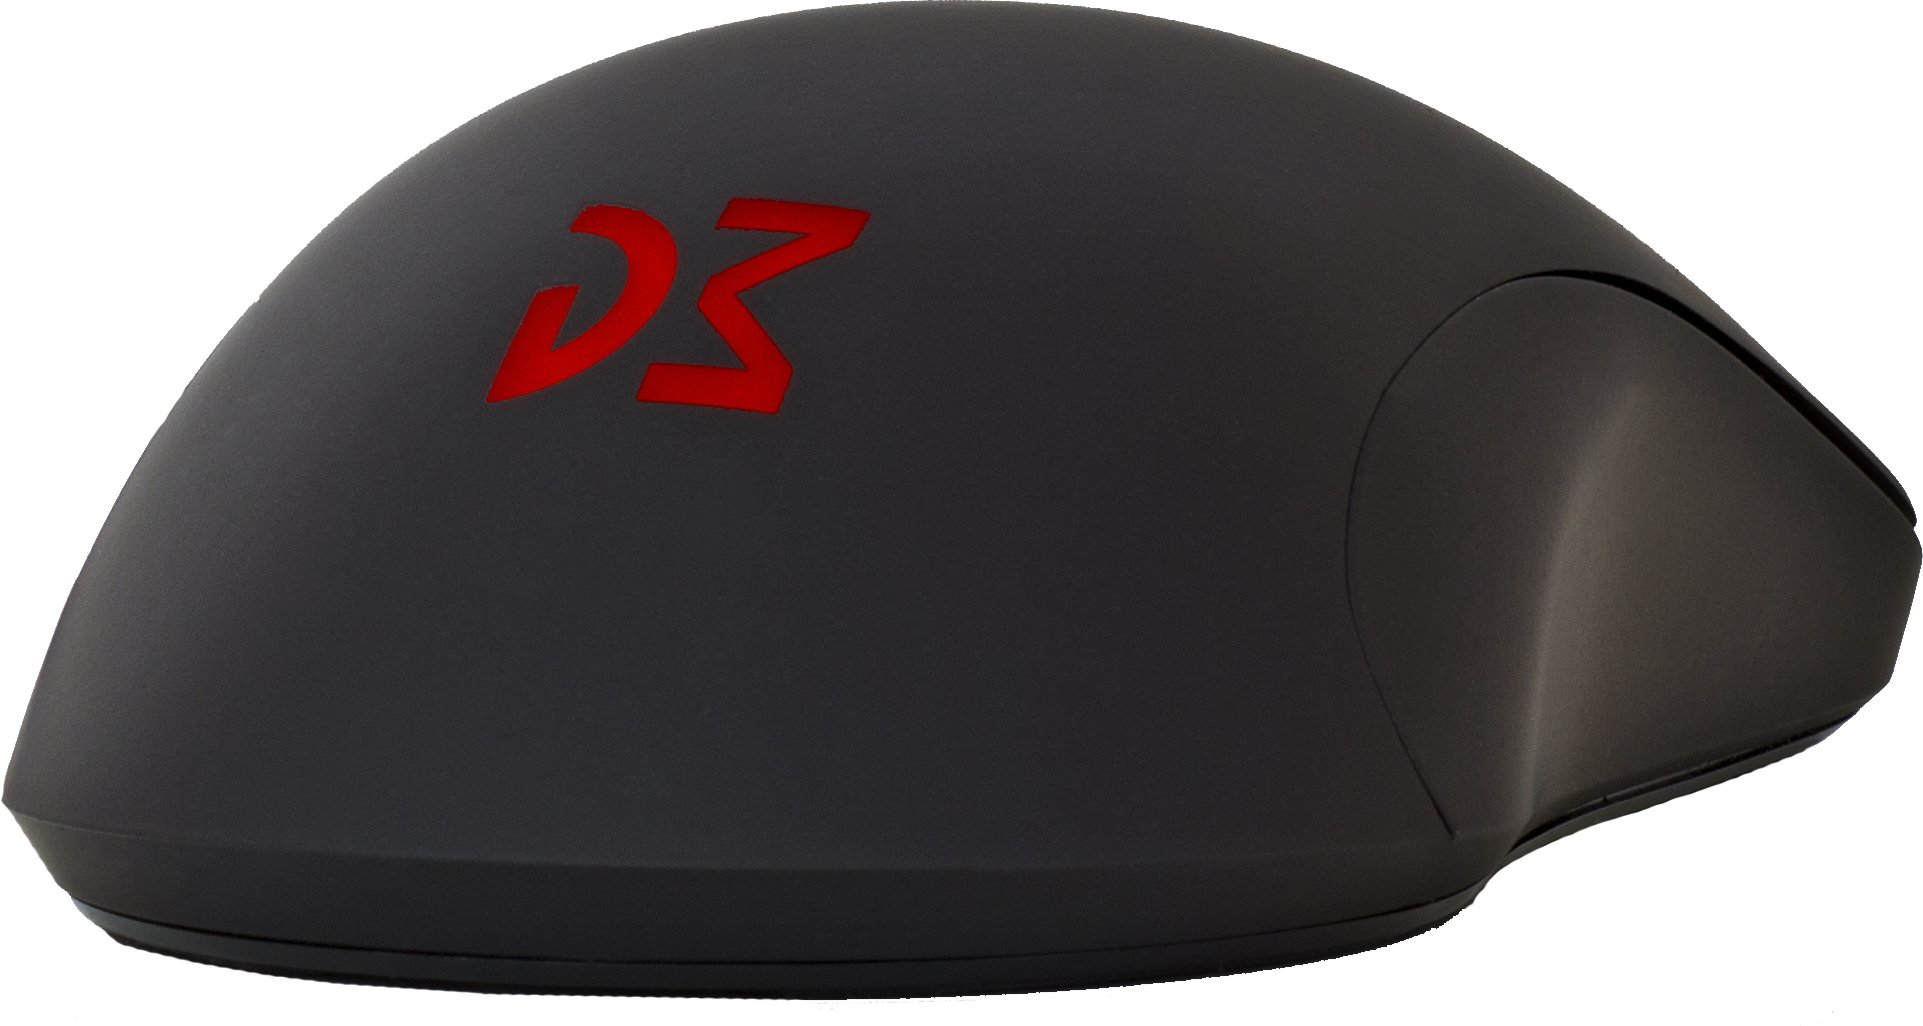 Dream Machines DM1 Pro S Optical Gaming Mouse (Matte) by Dream Machines (Image #2)